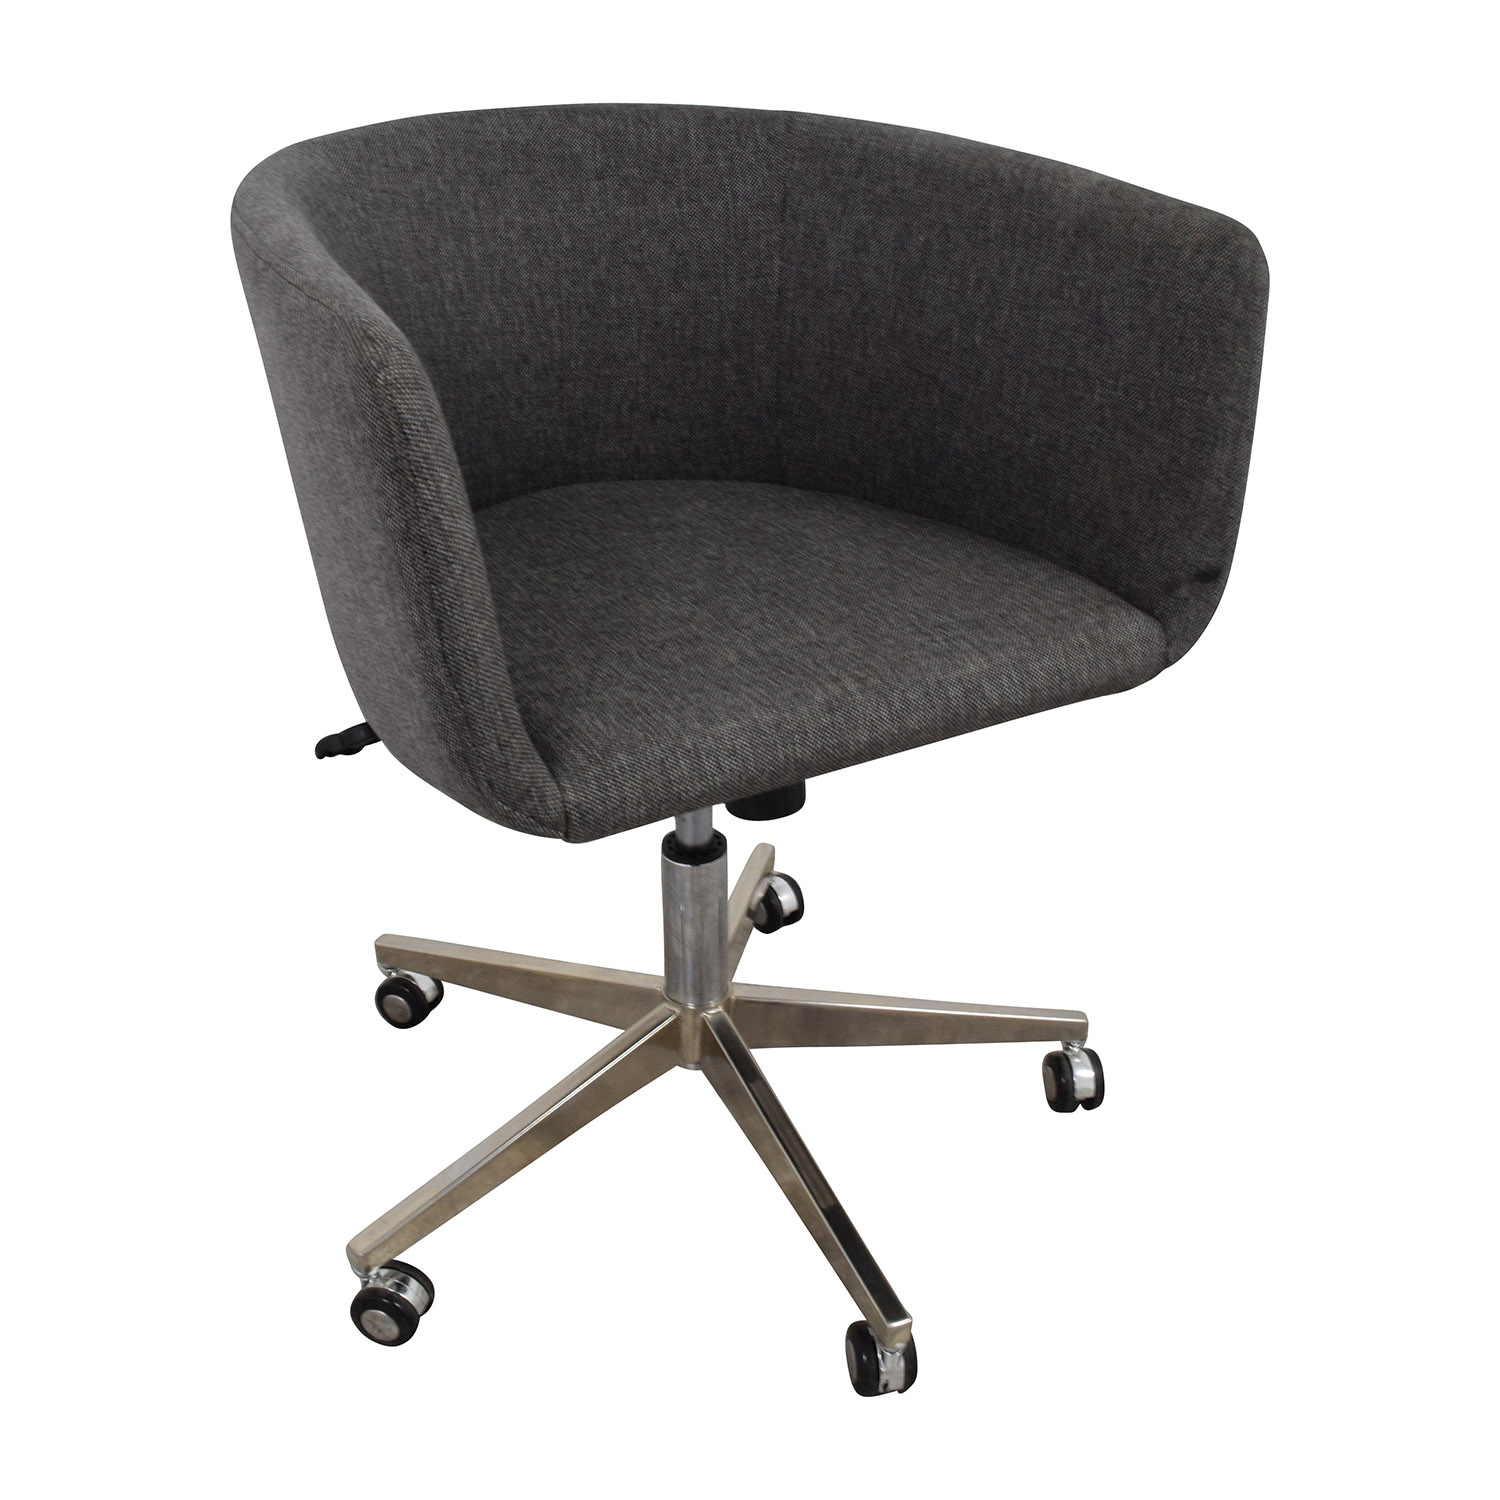 OFF Modern Grey fice Chair with Chrome Wheels Chairs